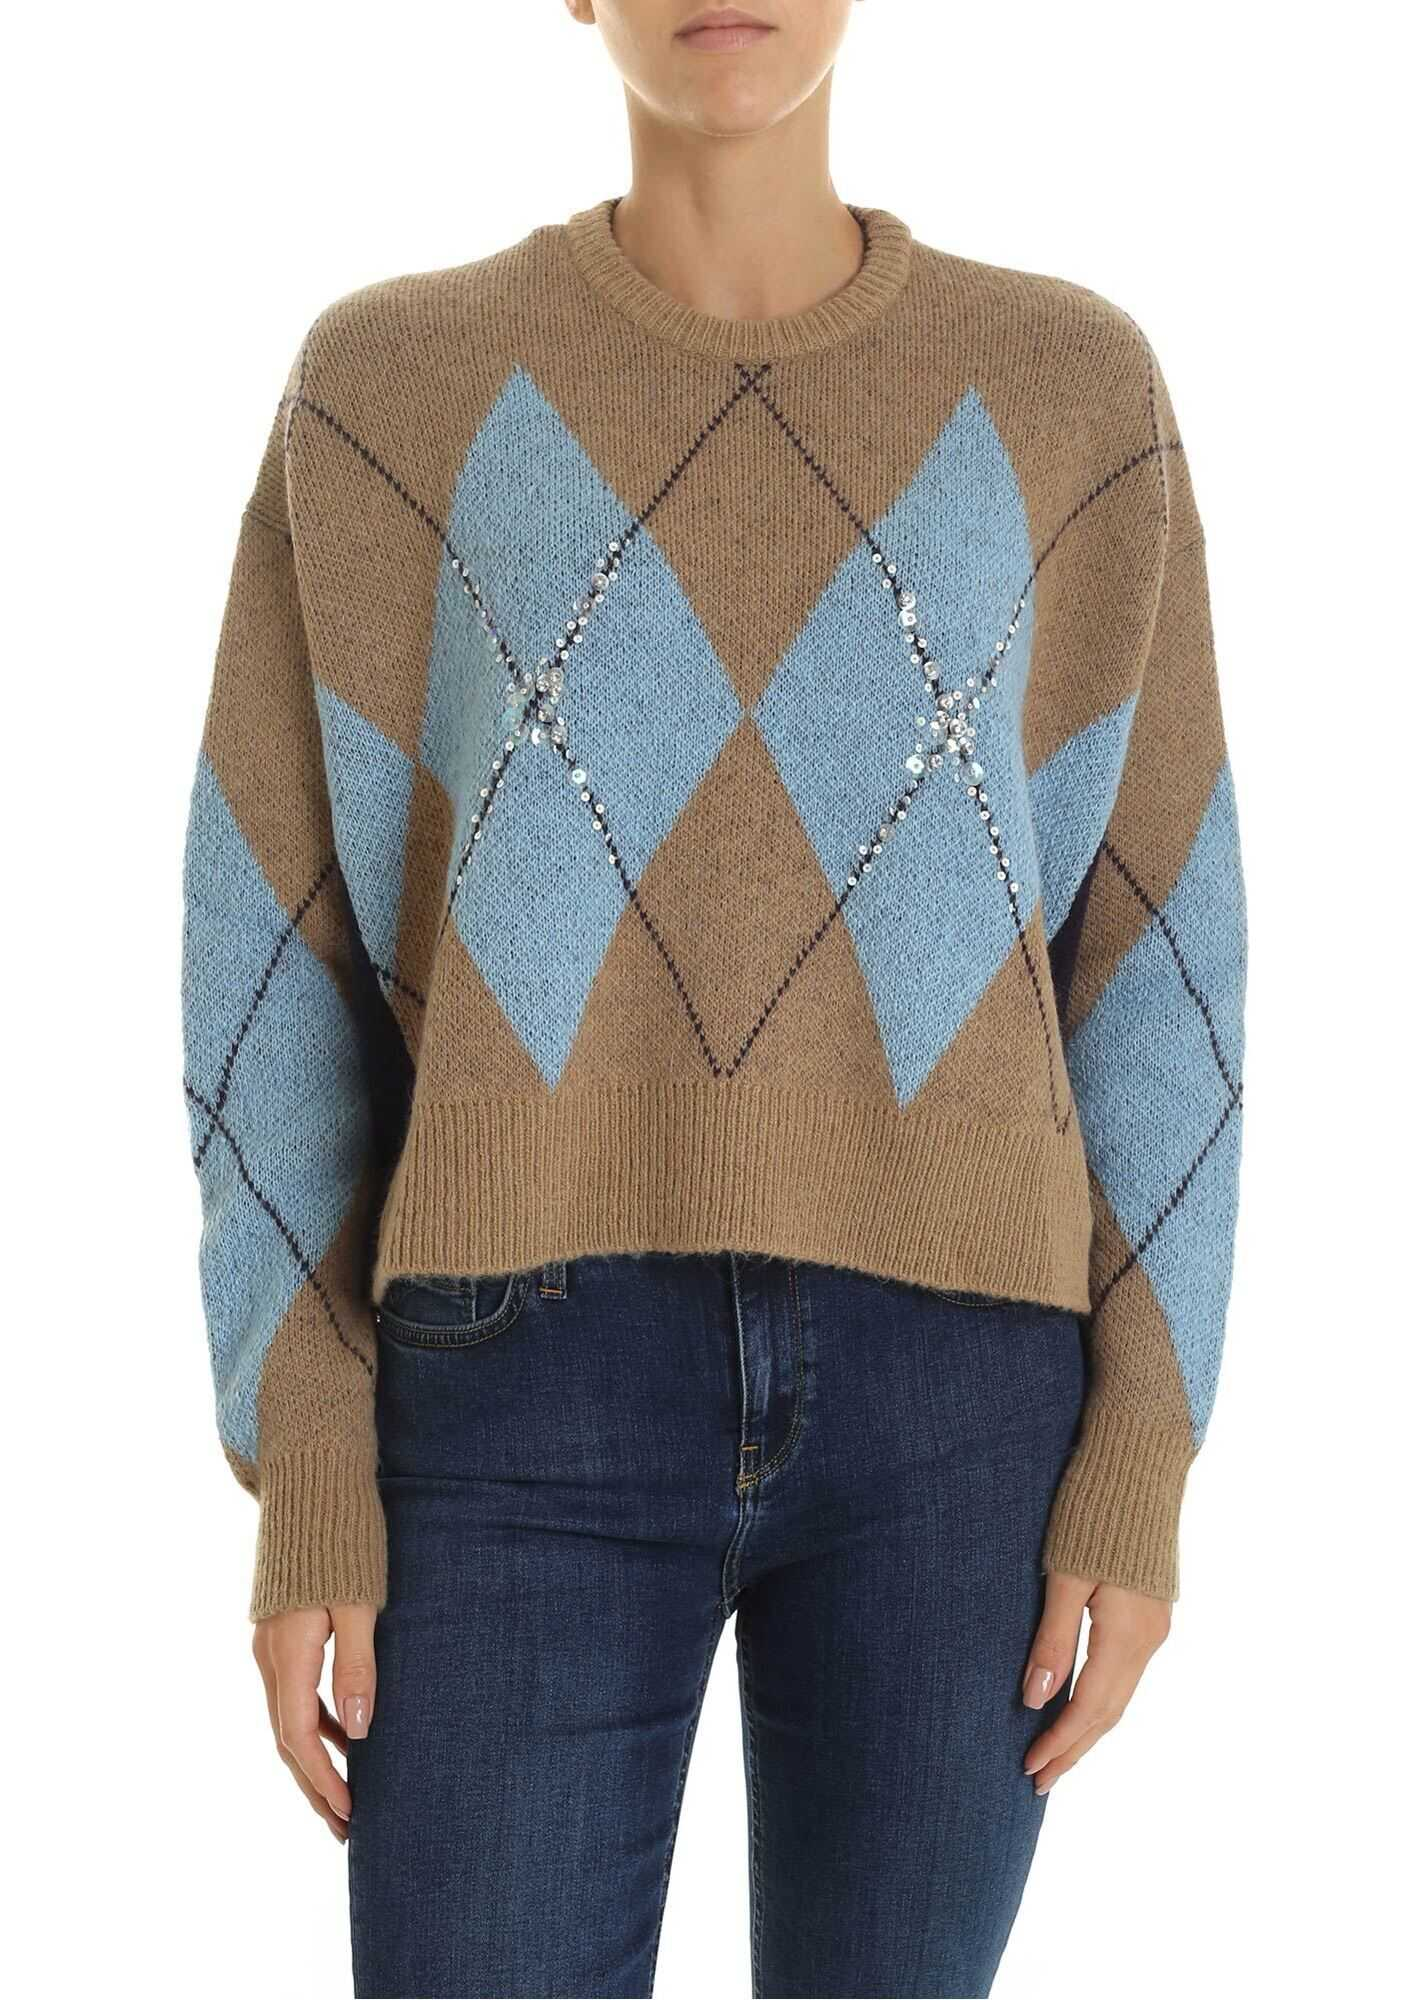 Mesopotamia Pullover In Beige And Light Blue thumbnail